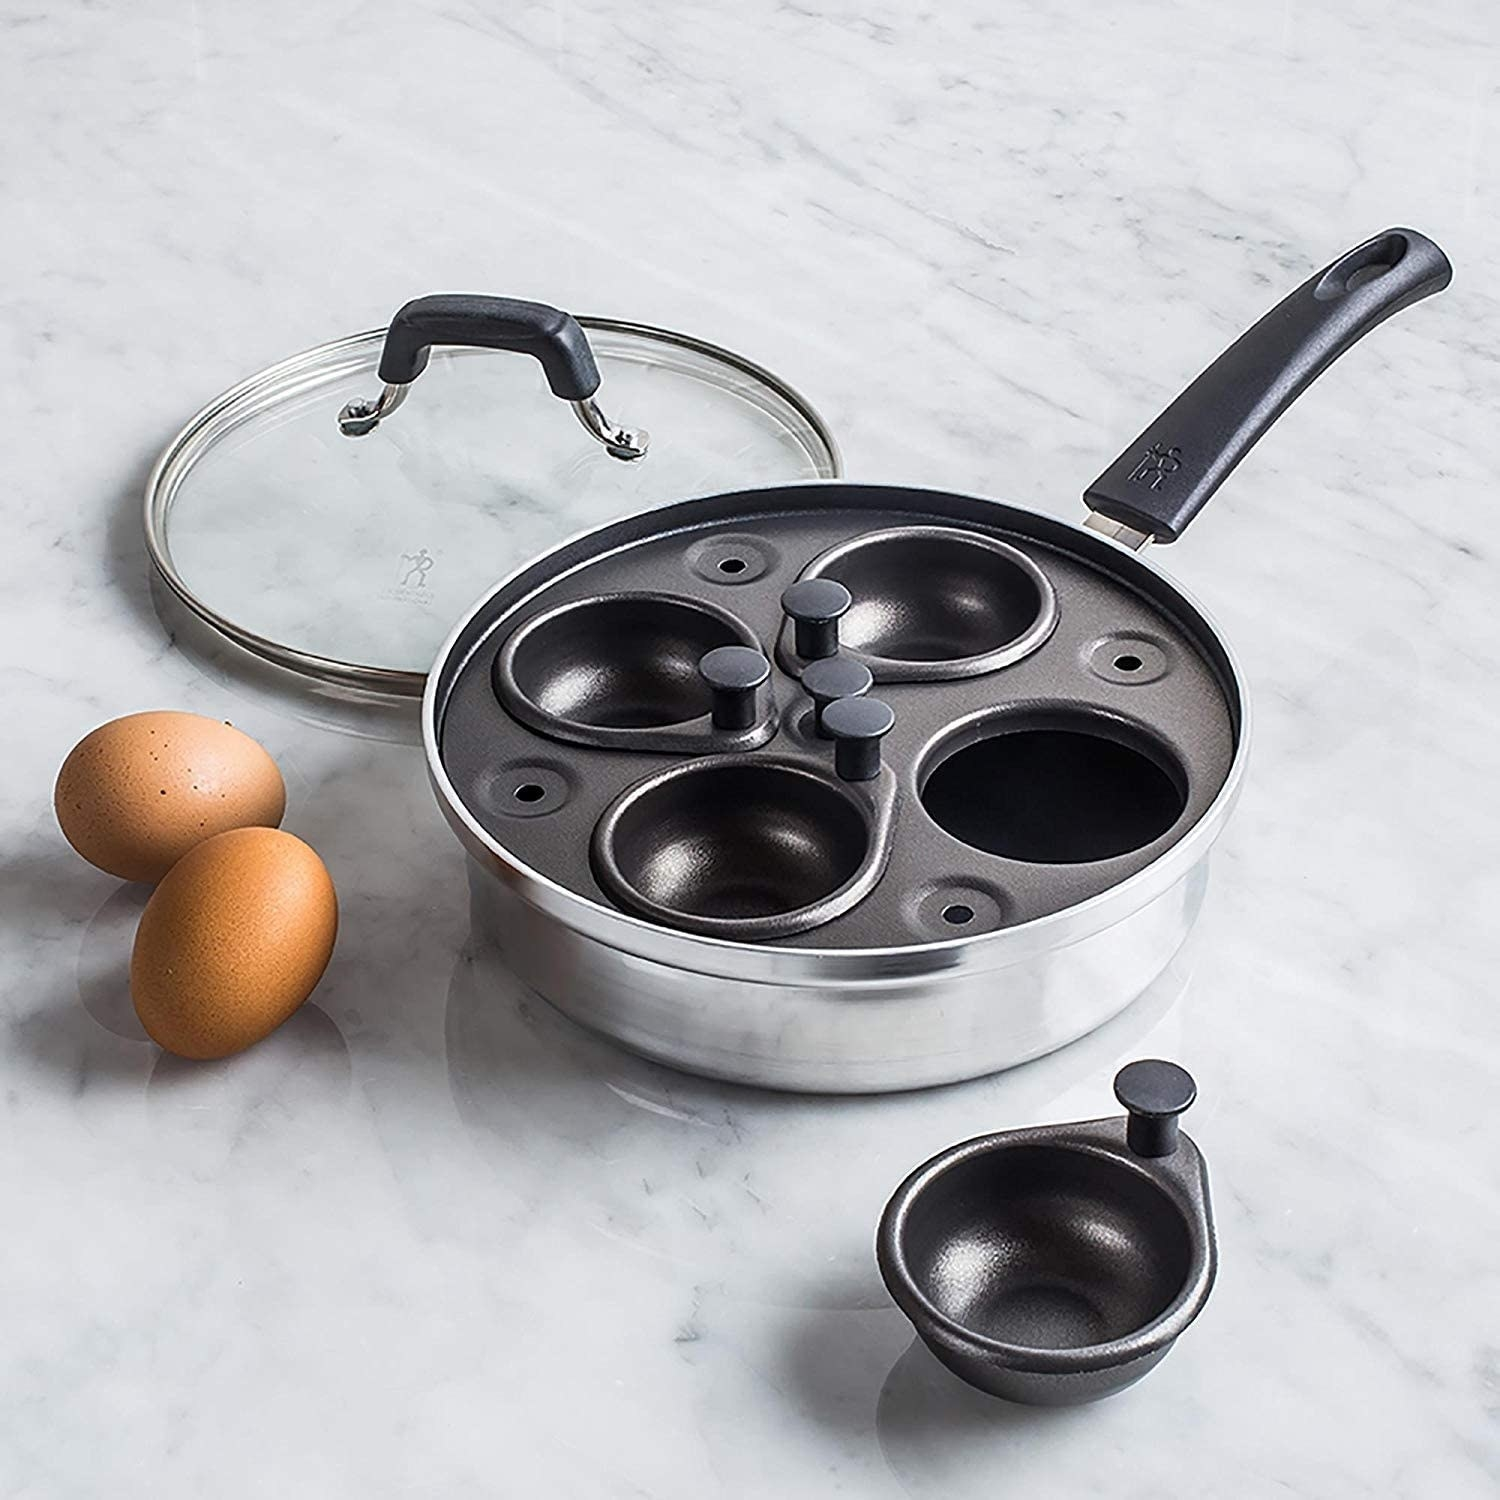 The egg poacher pan on a marble countertop with one of the pockets removed